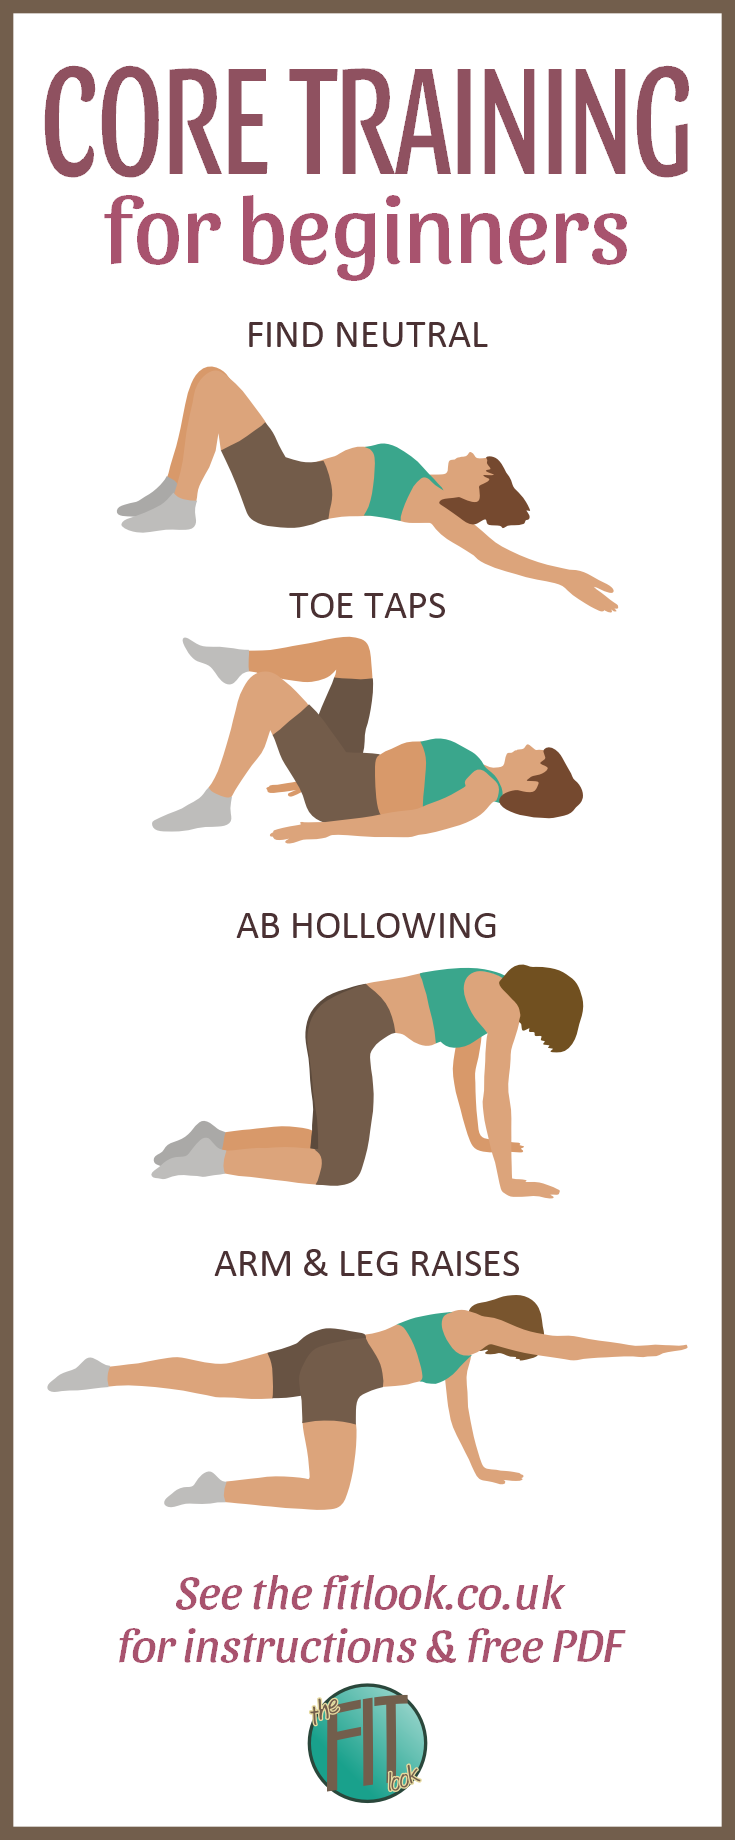 Beginners Core Exercises: Core training should form part of any fitness program. The core muscles align the pelvis, support the spine and pull the abdominal area in flat. When the core muscles are weak, posture is poor and there is unnecessary strain on the muscles and joints of the back. This can lead to chronic back pain or back injury. If you exercise with weak core muscles it increases the risk of pain and injury. | The Fit Look